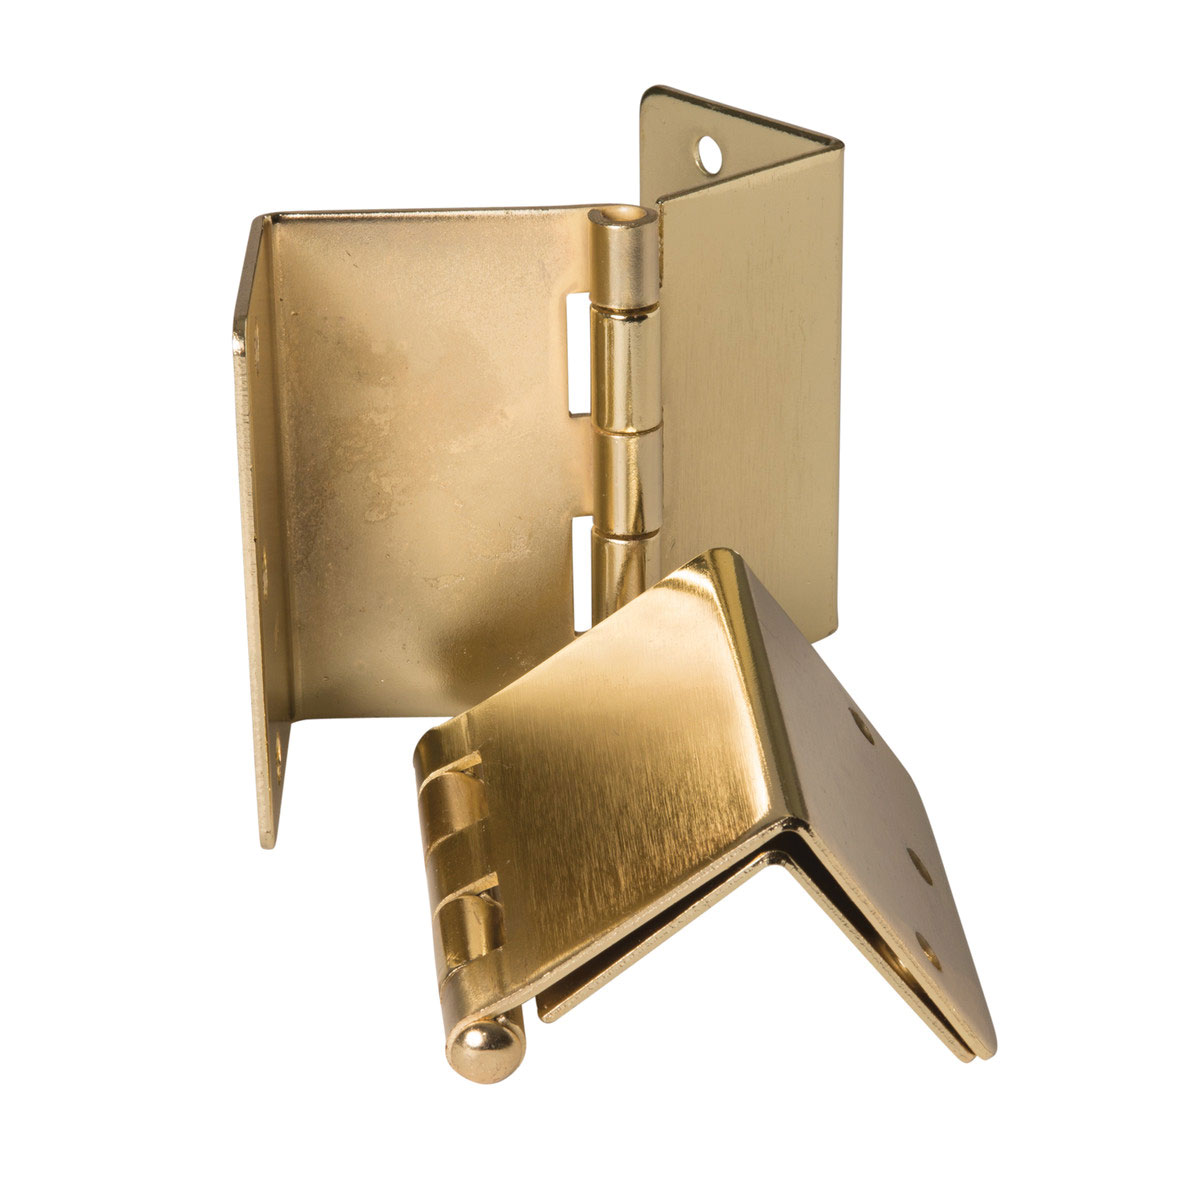 Expandable Door Hinge - Gold